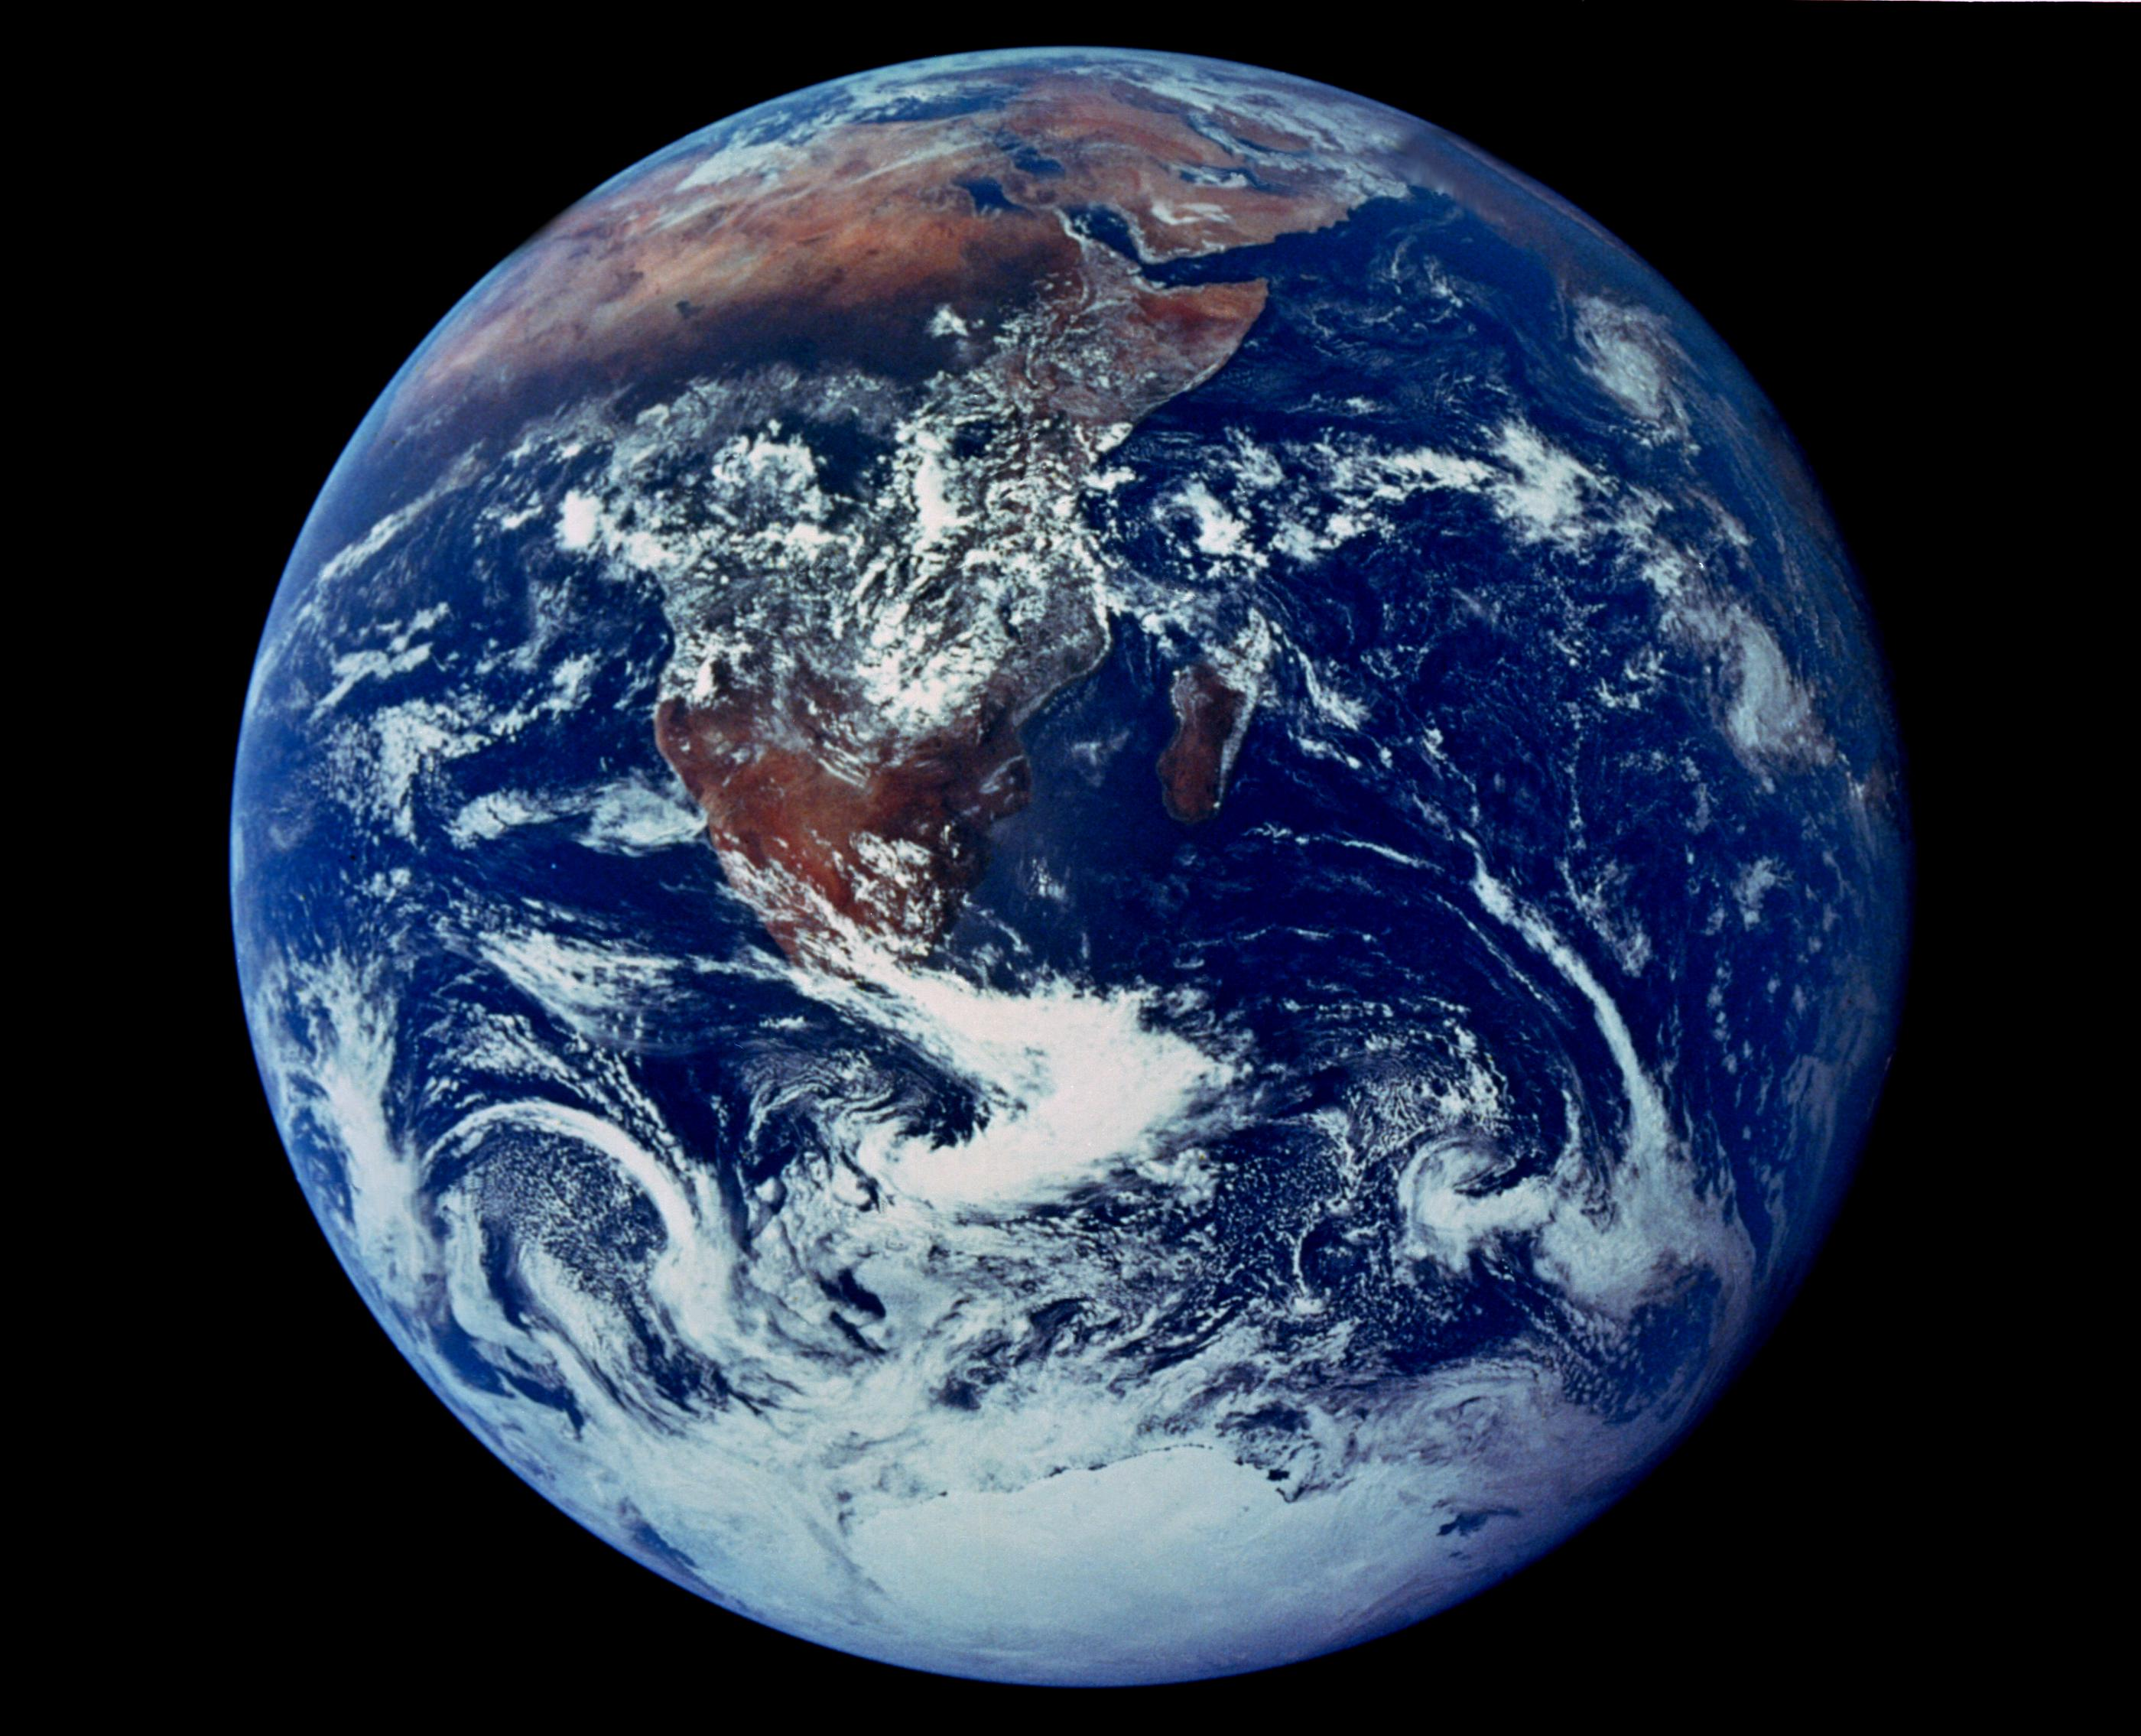 FileApollo 17 Image Of Earth From Spacejpeg